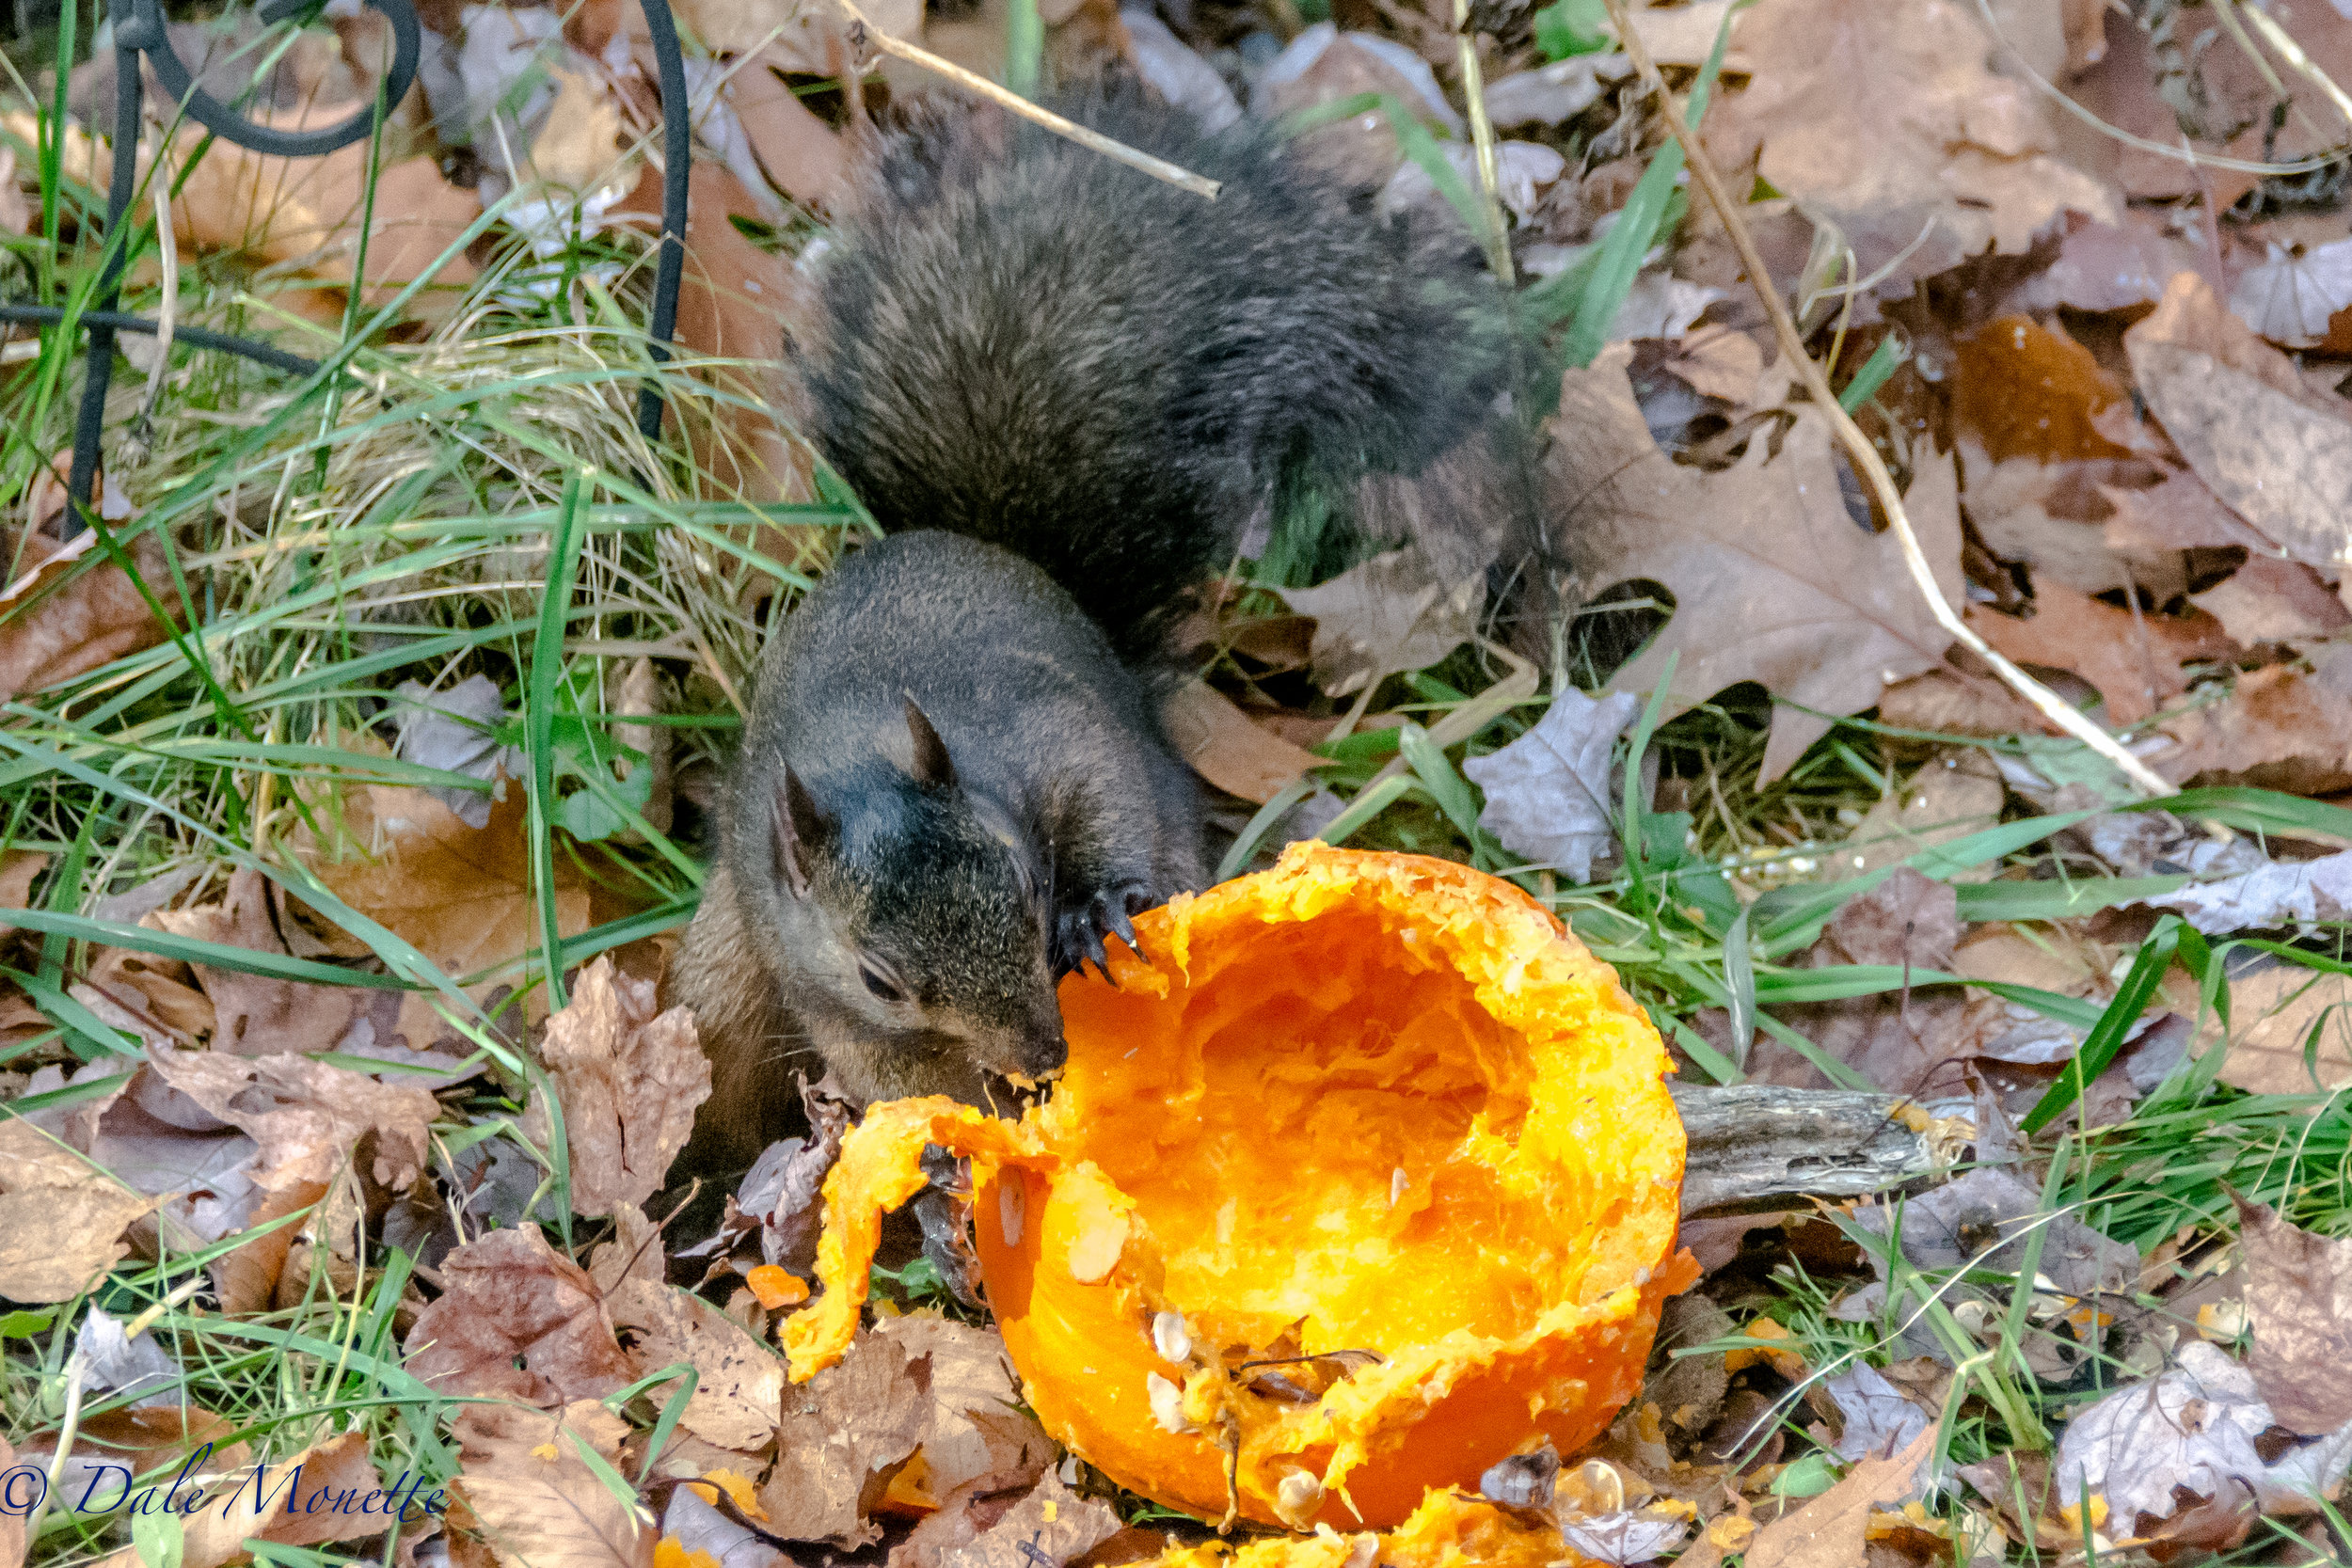 One of the 2 black squirrels we have here was enjoying the pumpkin we put out there for them. We have 4 grays and 2 blacks keeping it exciting around here most of the time.....  12/3/16